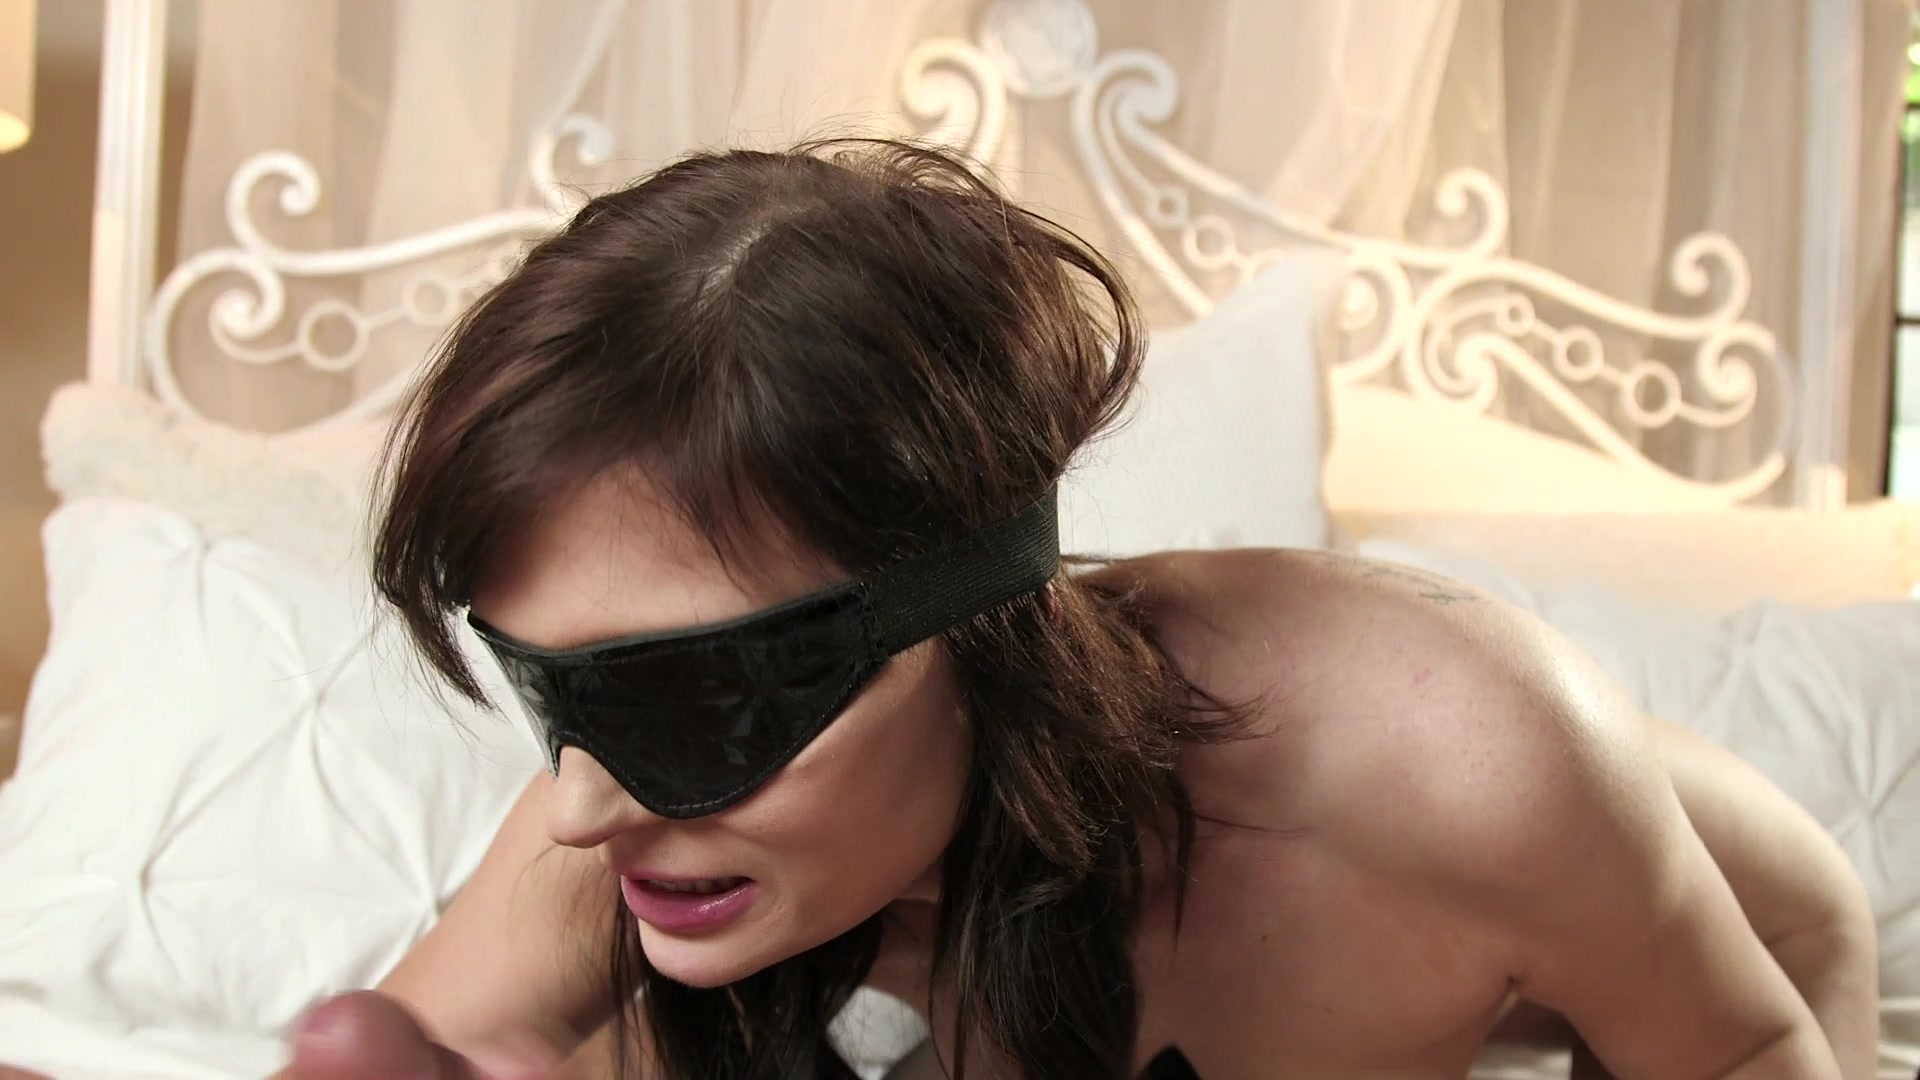 Blindfolded wife videos